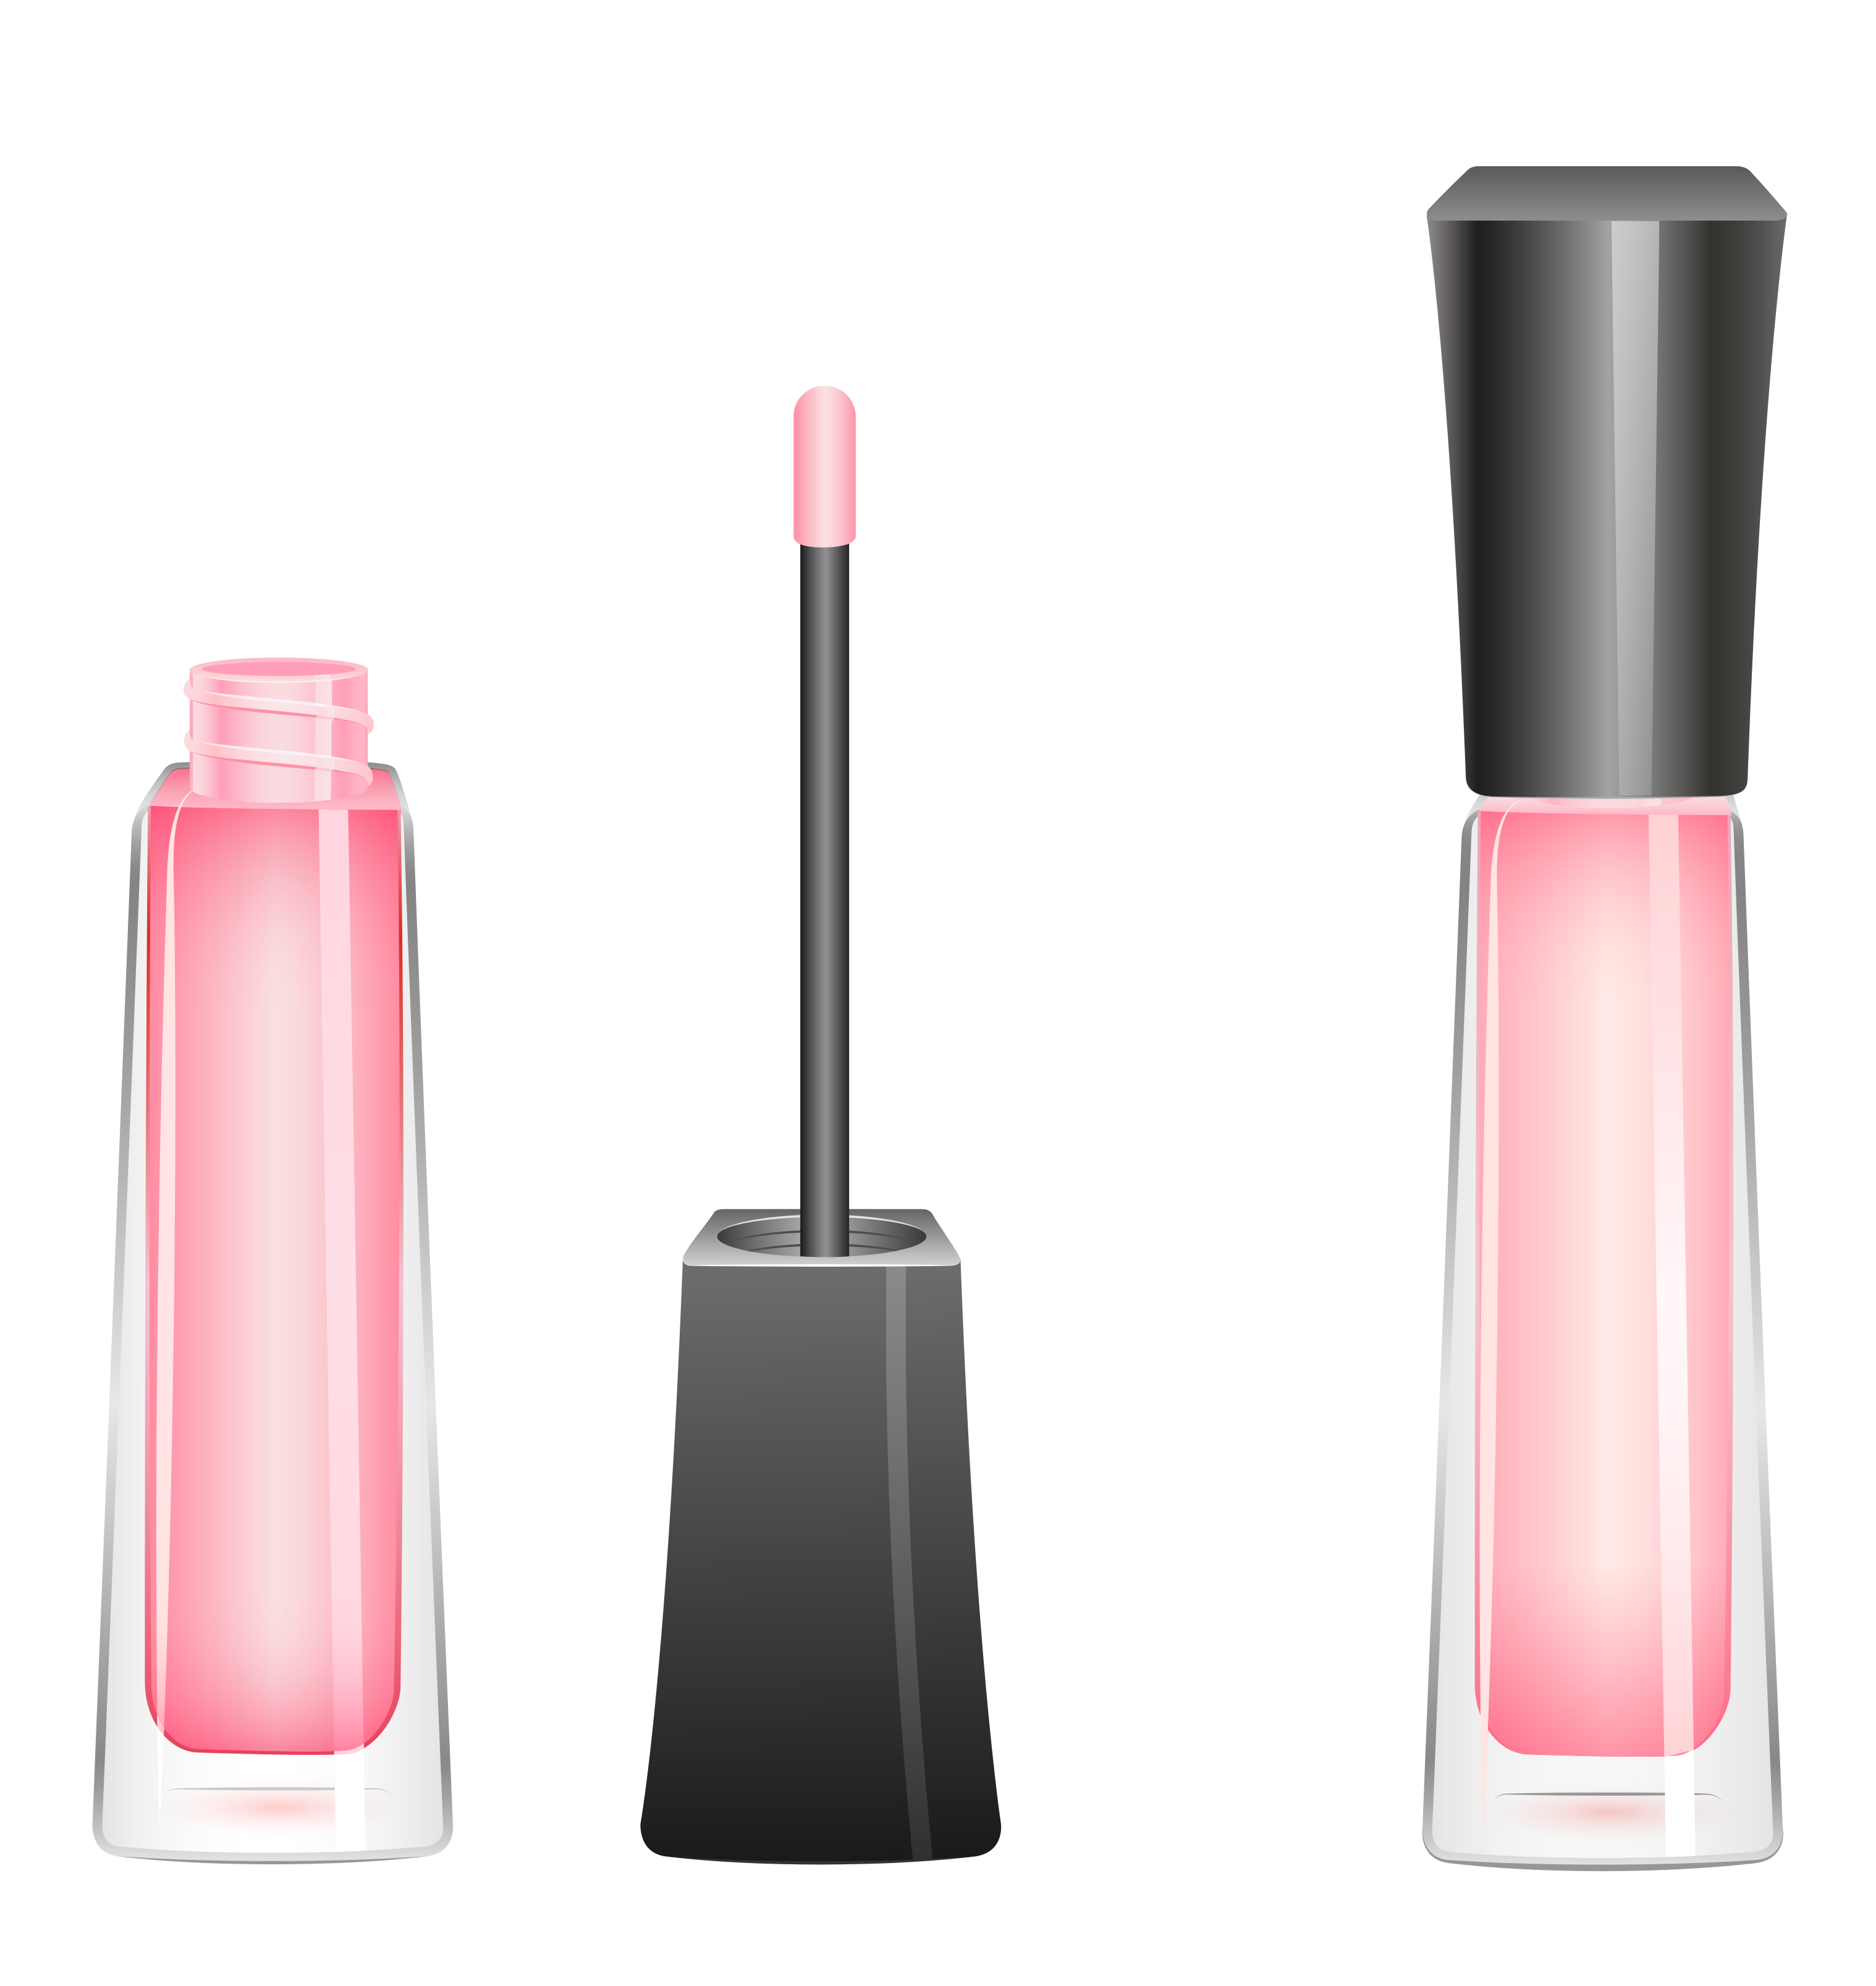 Lipstick clipart pink lipstick. Png picture gallery yopriceville